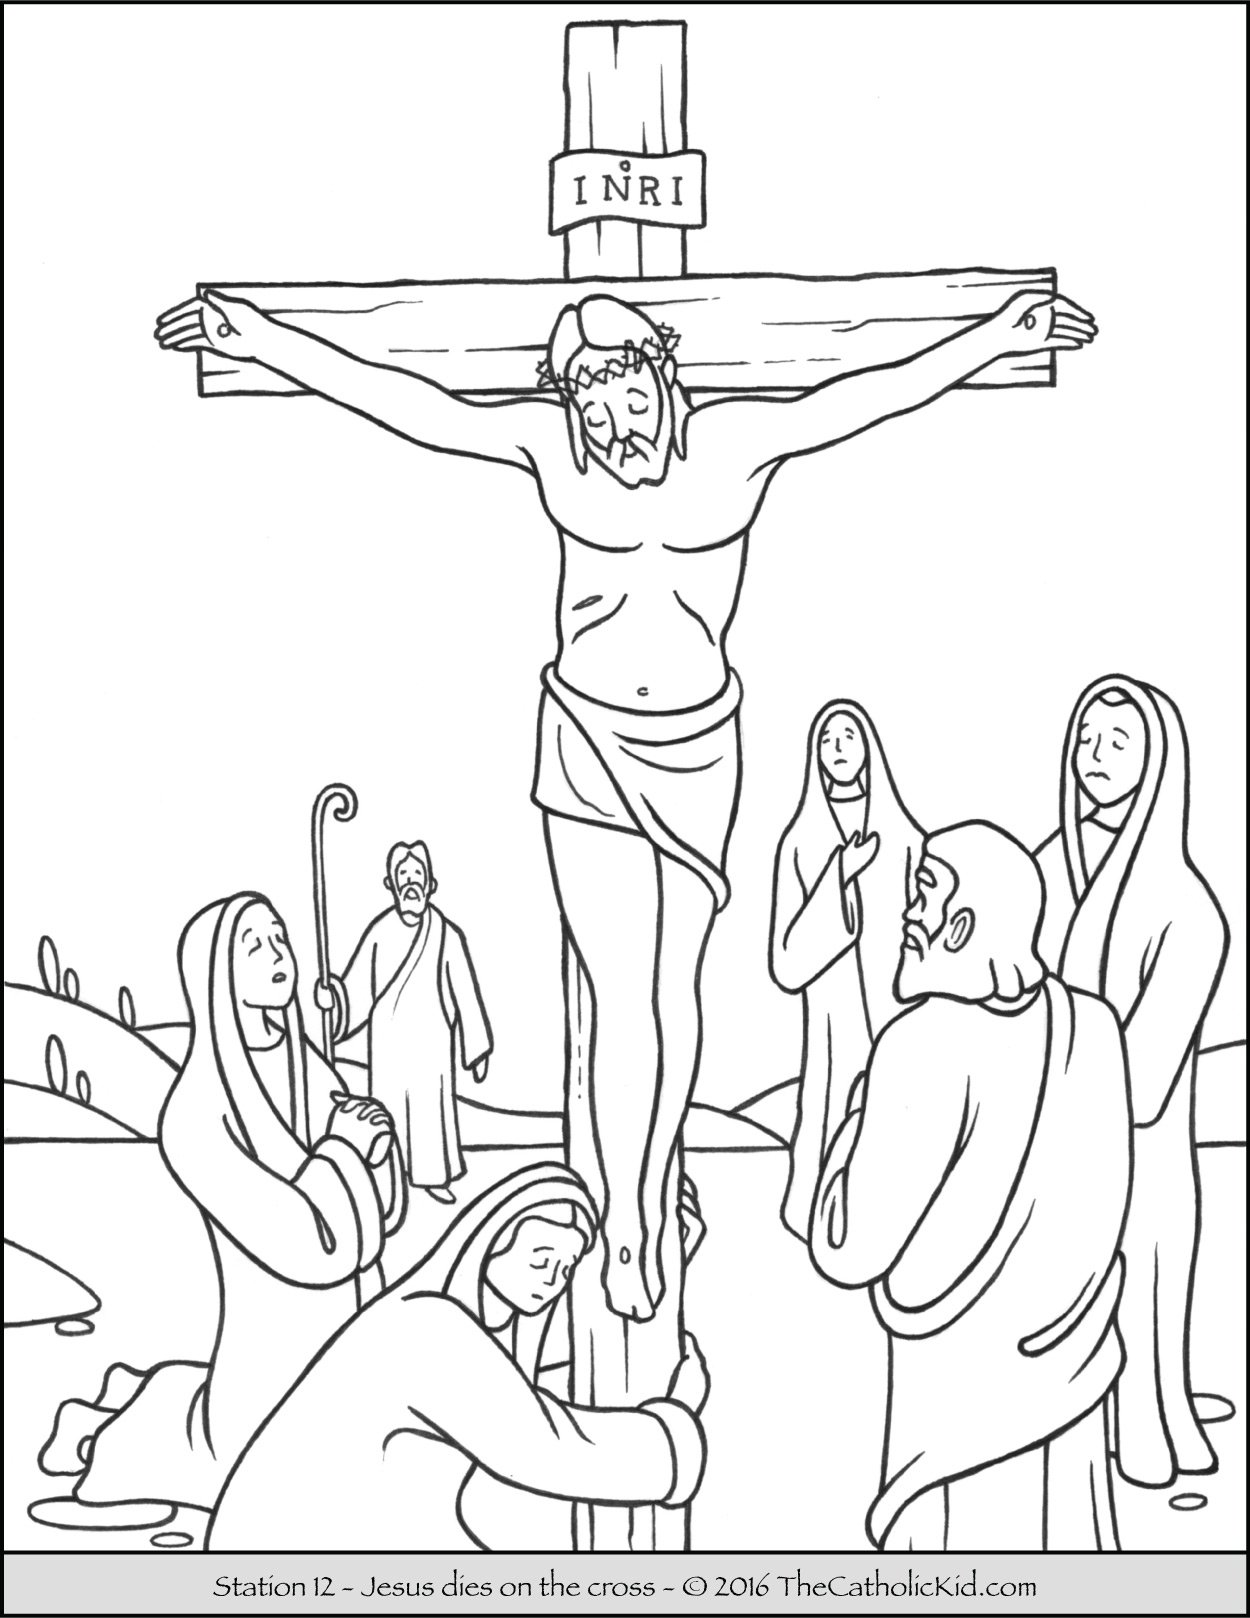 Stations Of The Cross Coloring Pages Captivating Stations Of The Cross Coloring Pages  The Catholic Kid Design Decoration